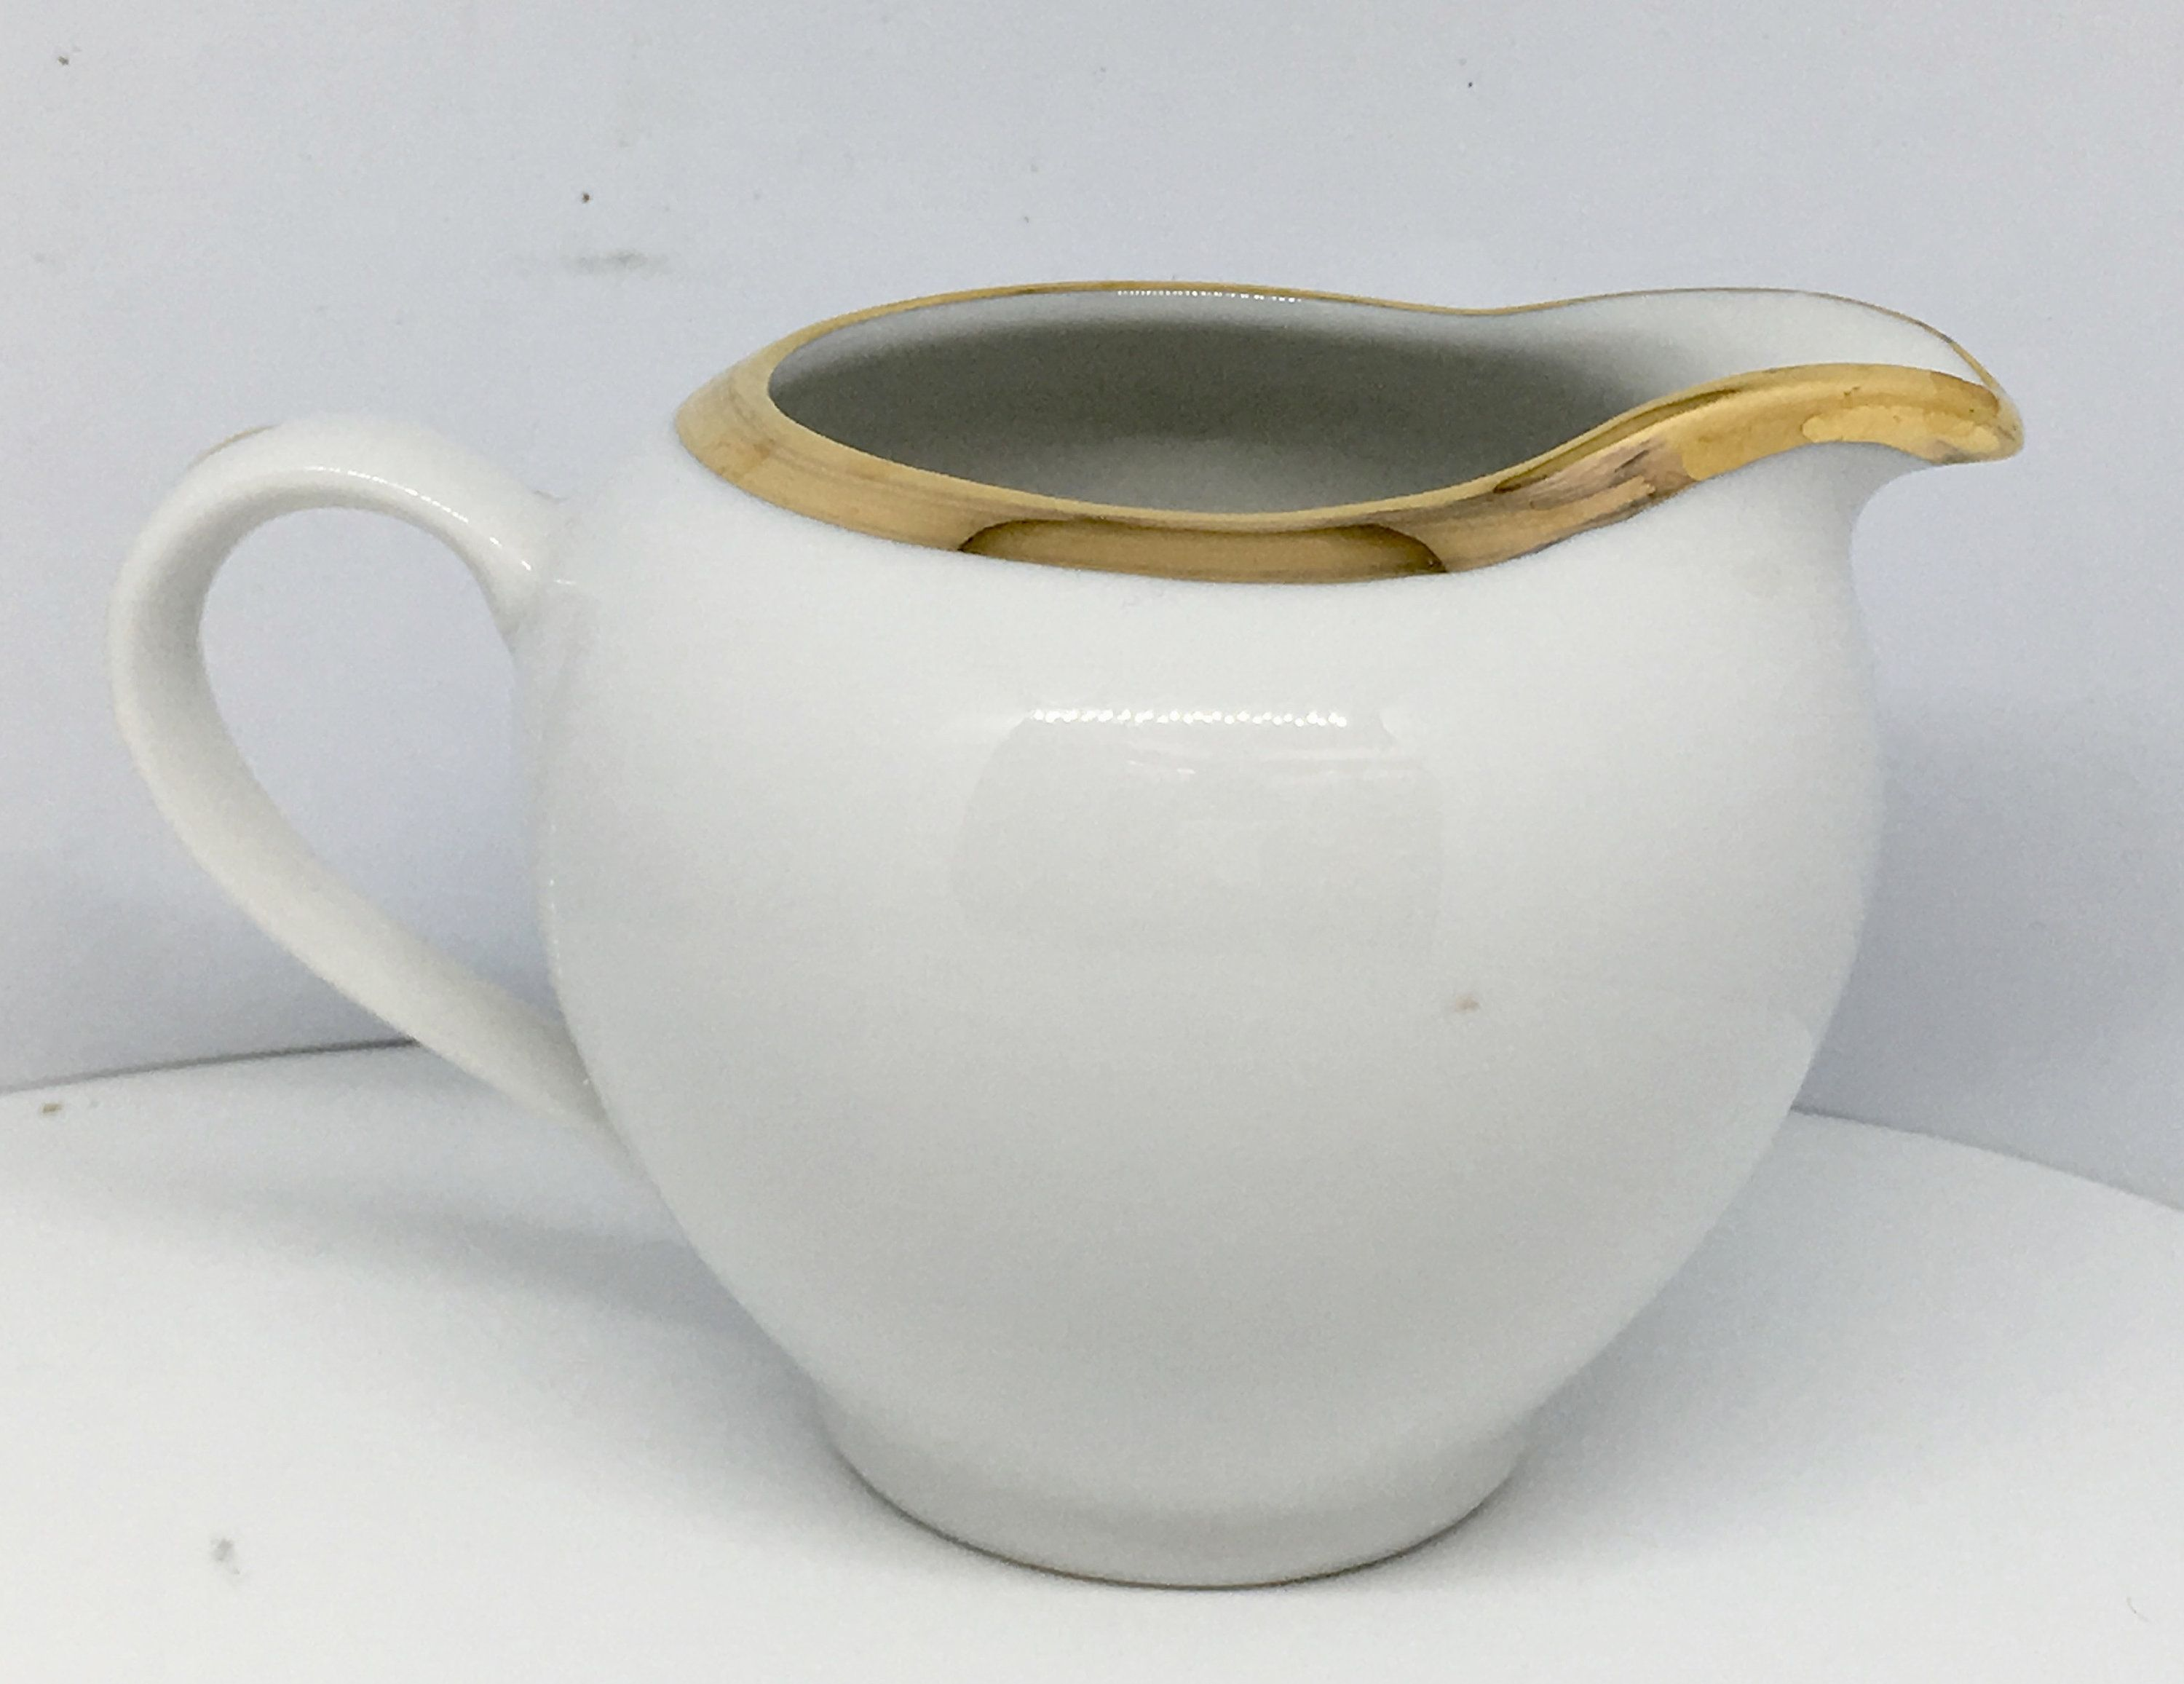 The Cellar Monno Bangladesh 1995 White With Gold Trim Round Creamer Small Pitcher White And Gold Vase By Clittleshop On E Vintage Dishes Gold Vases Creamer